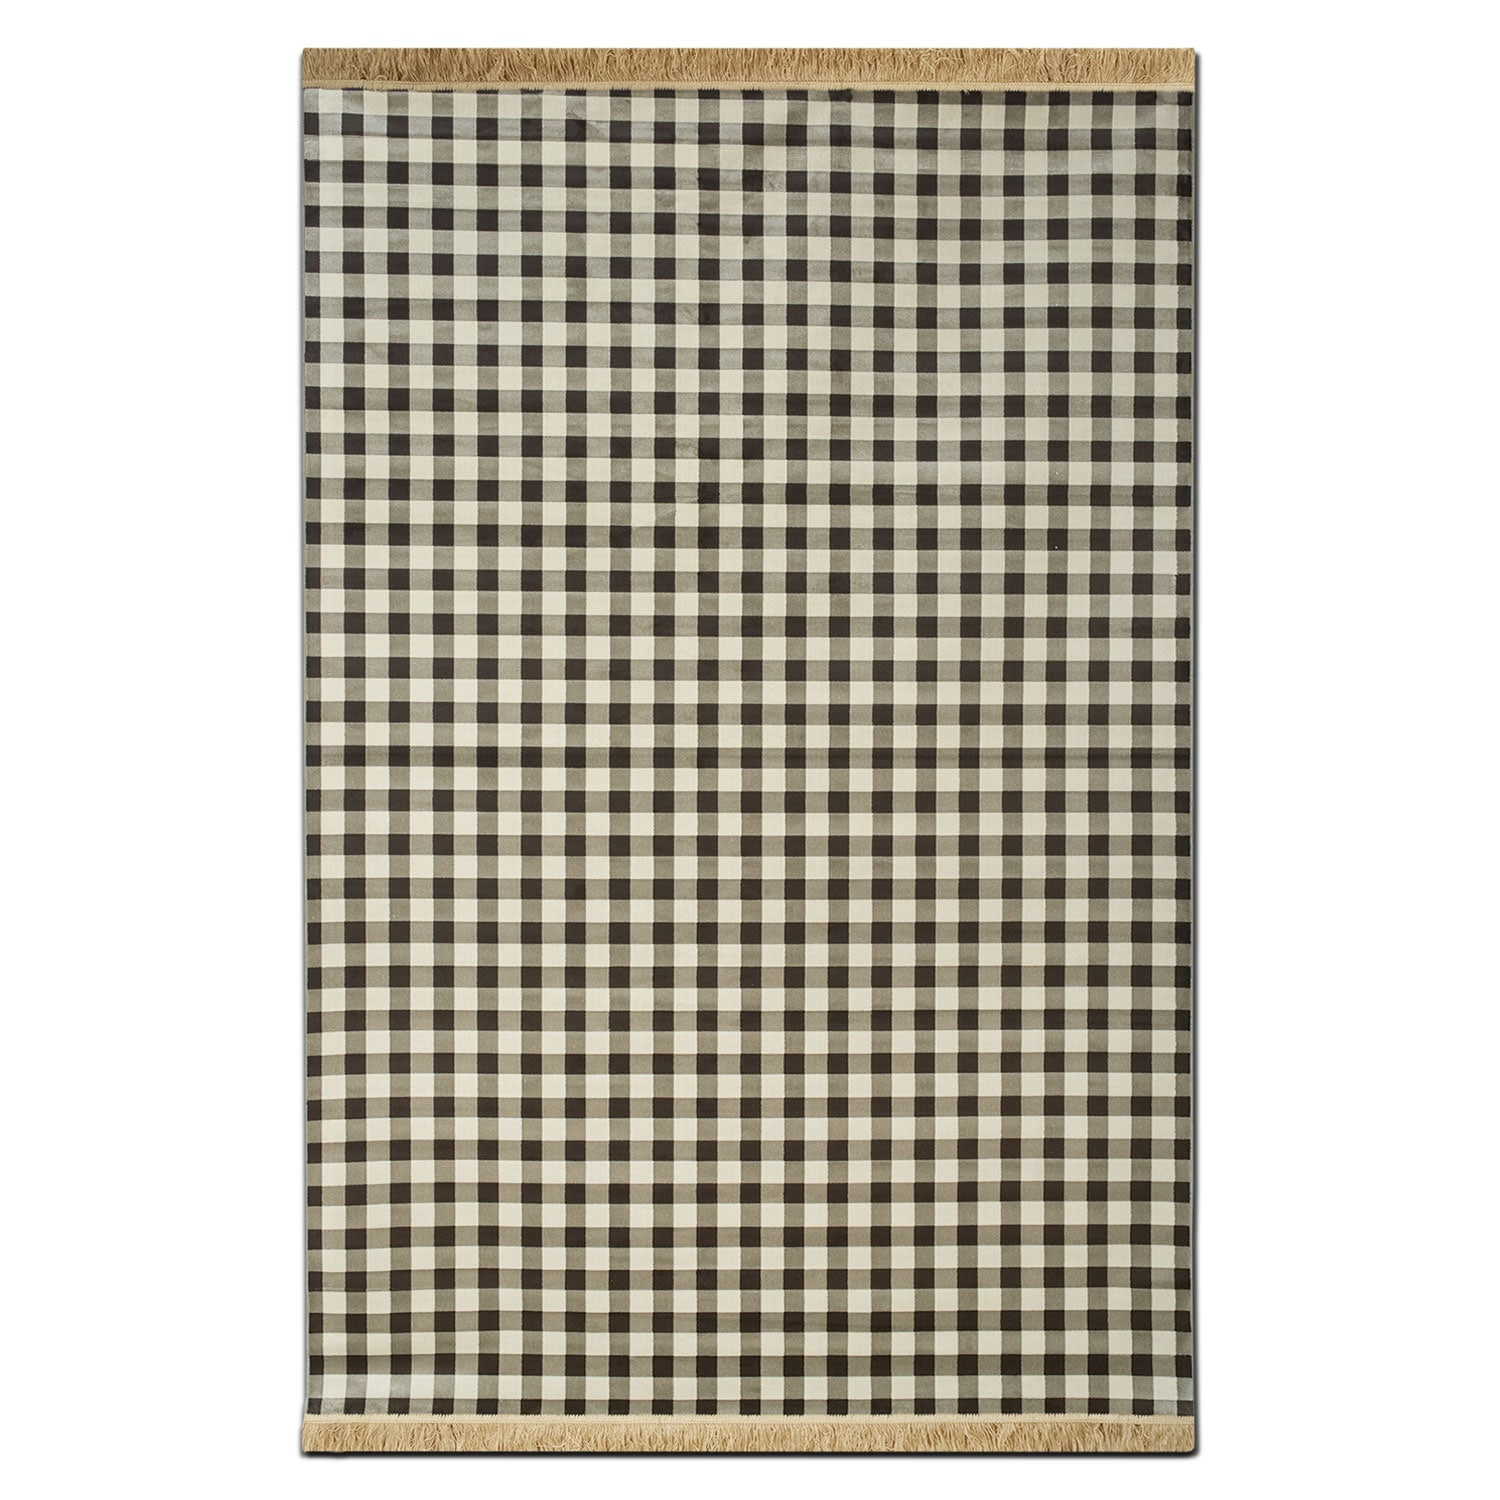 Sonoma 5' x 8' Area Rug - Black and White